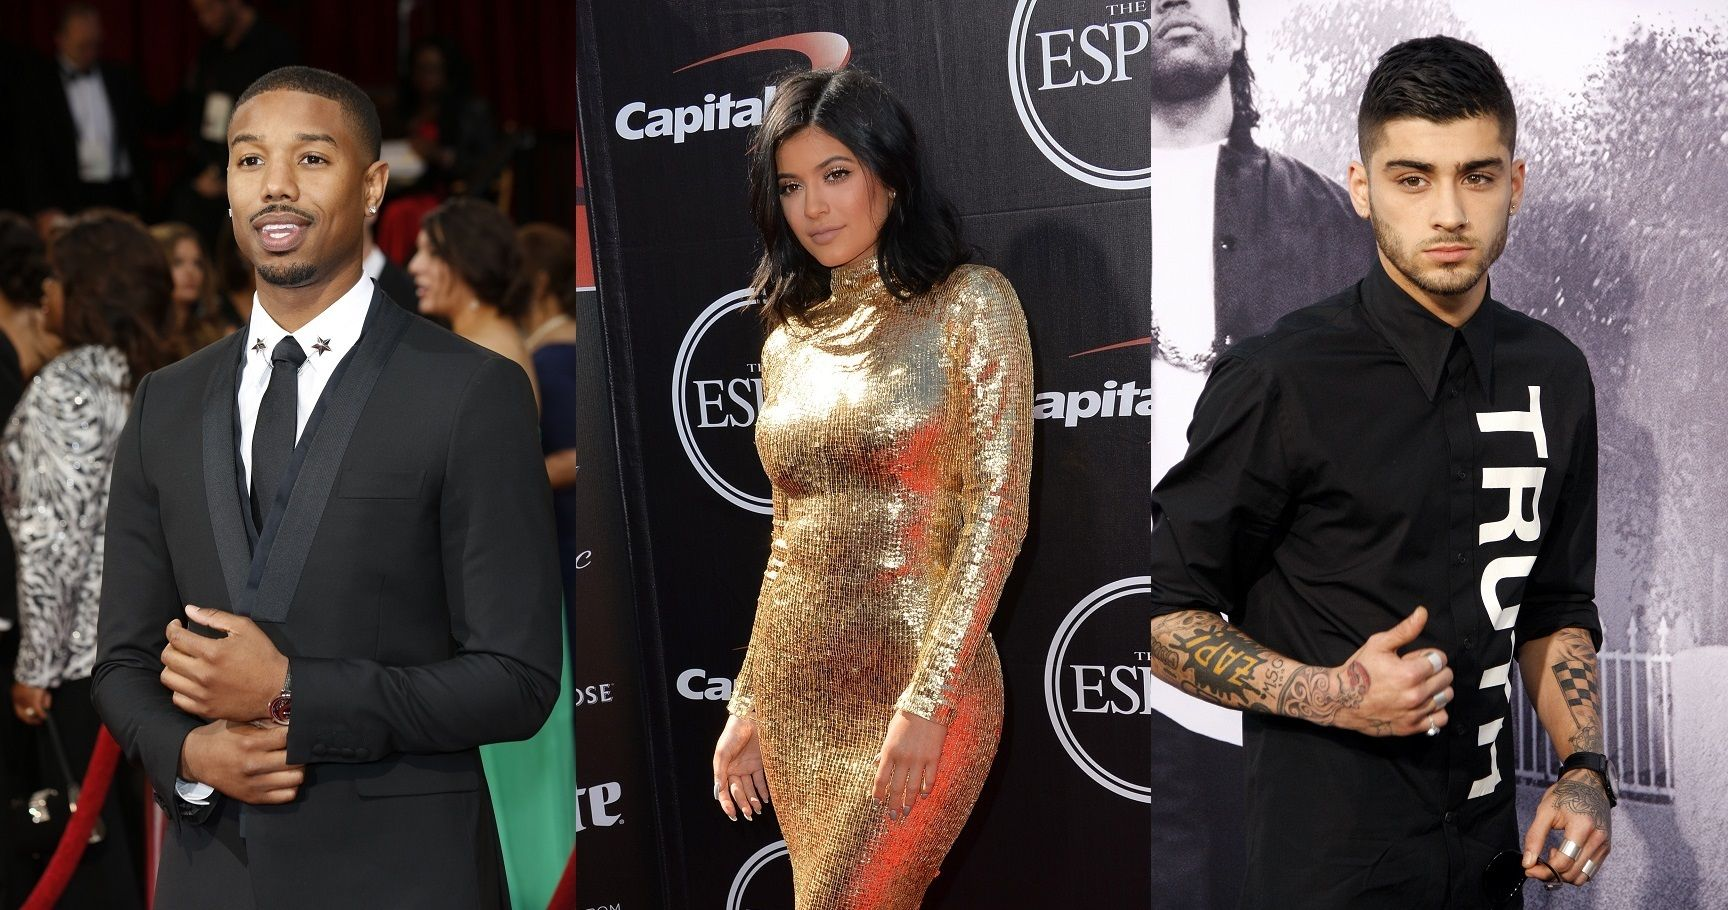 Top 10 Celebs Kylie Jenner Should Hook Up With